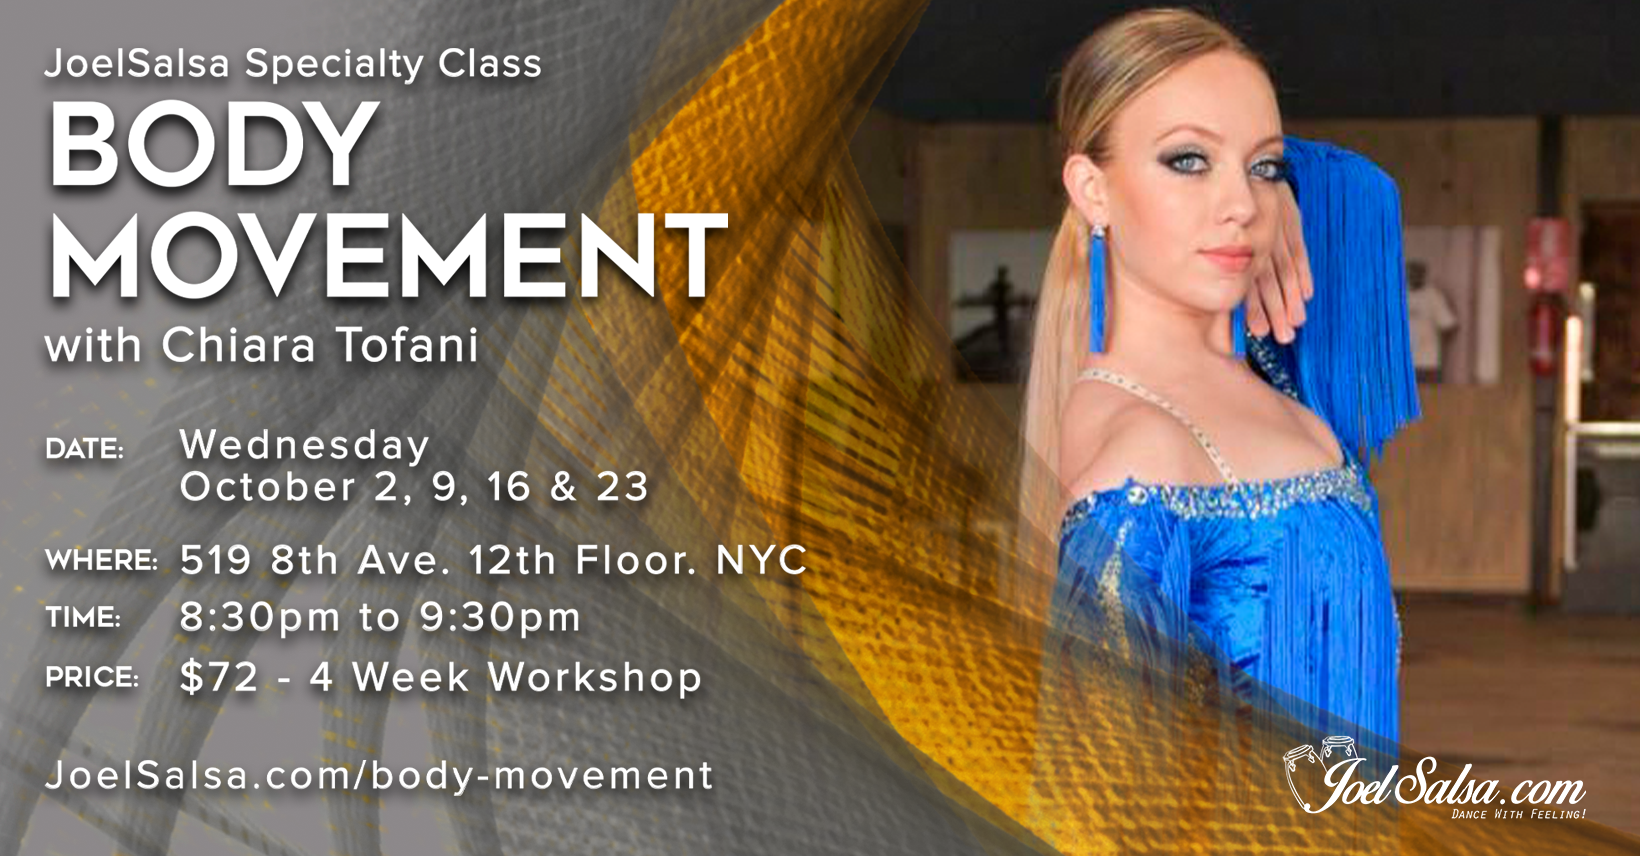 Body Movement with Chiara Tofani - JoelSalsa October Specialty workshop